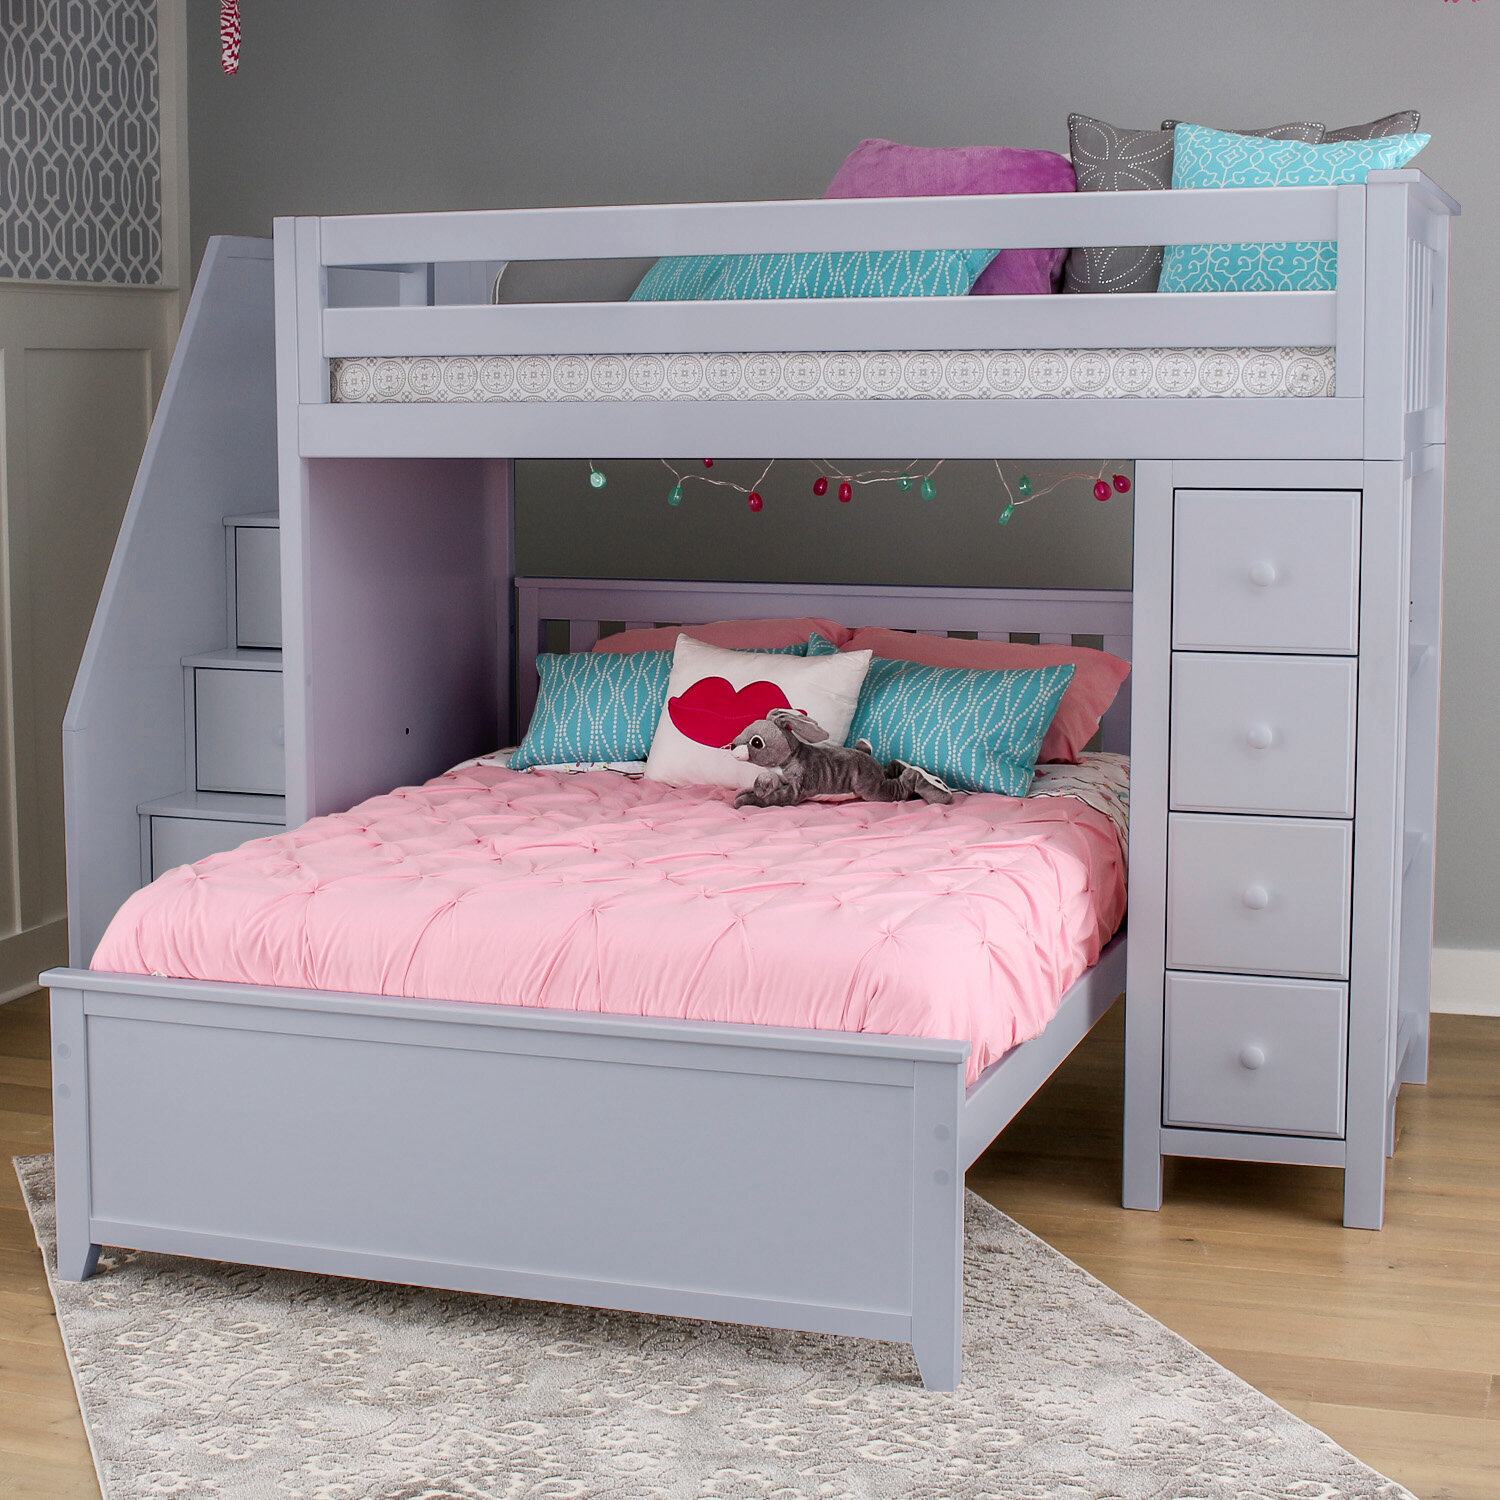 Harriet Bee Ayres L Shaped Bunk Bed With Drawers Reviews Wayfair